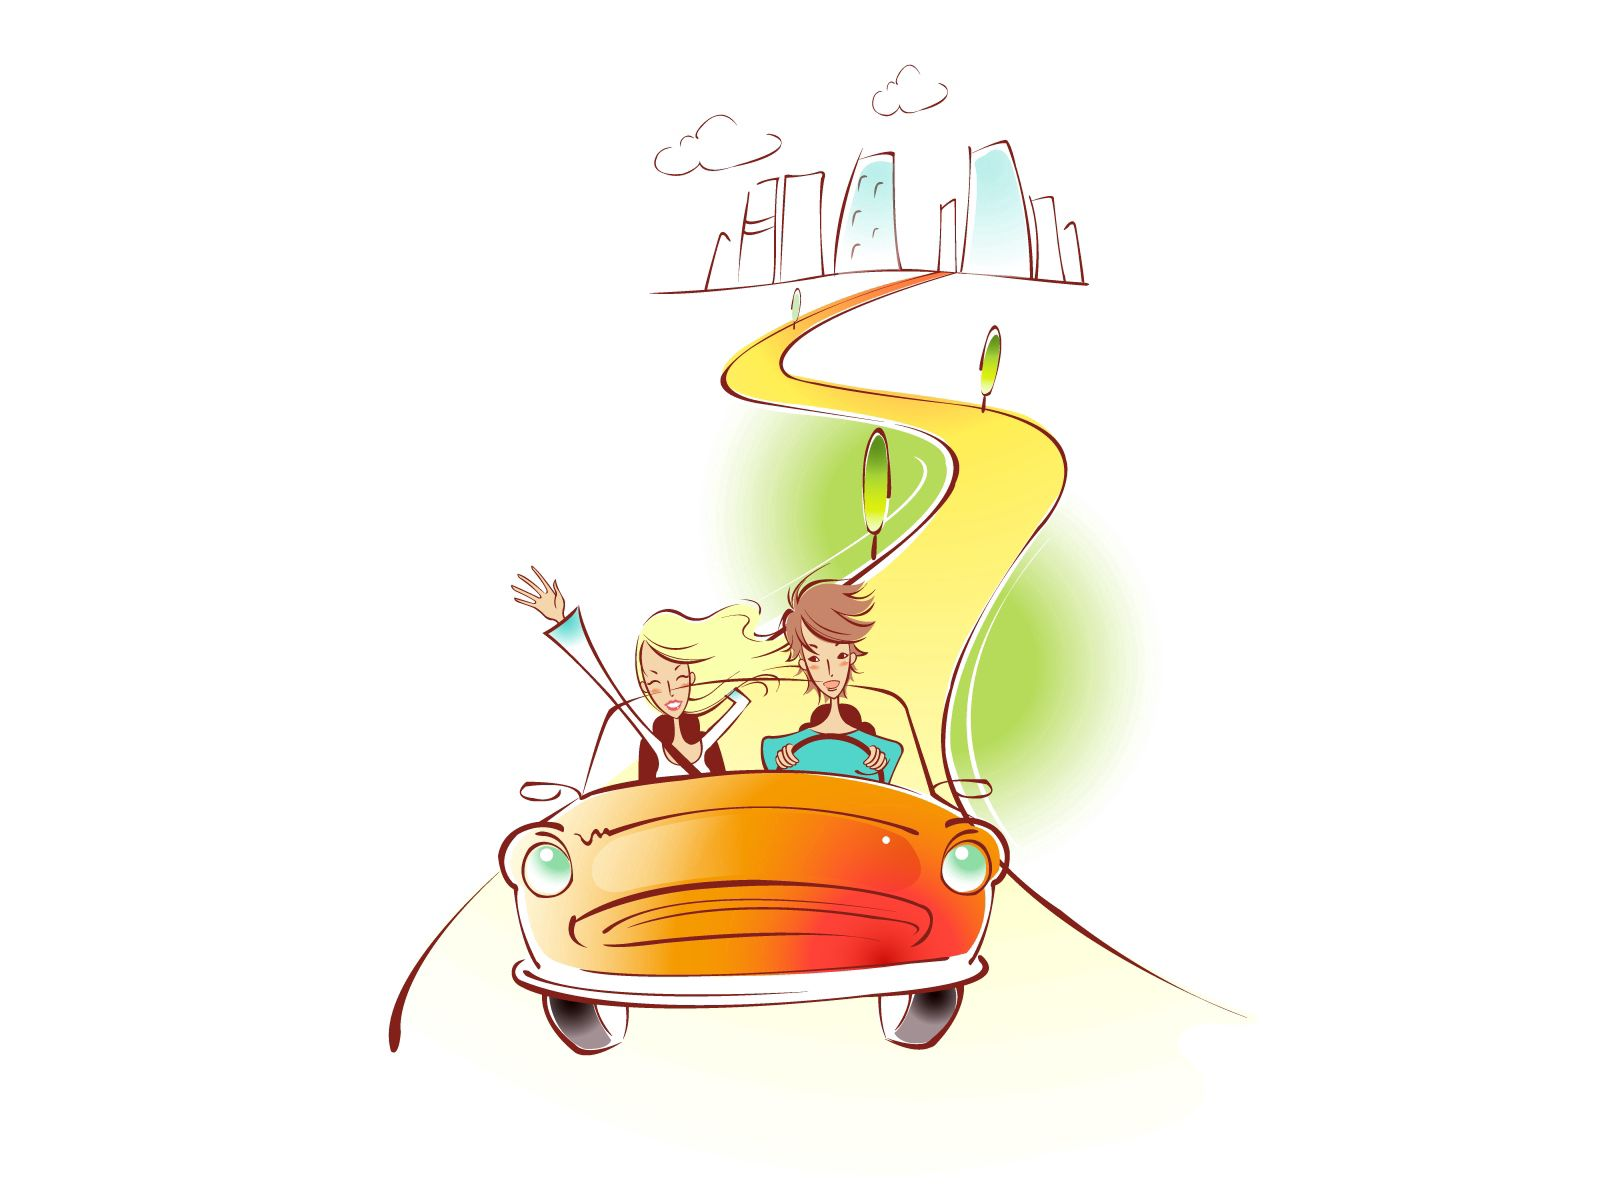 80441 download wallpaper Couple, Pair, Art, Picture, Drawing, Love, Car, Trains, Speed, Greeting screensavers and pictures for free